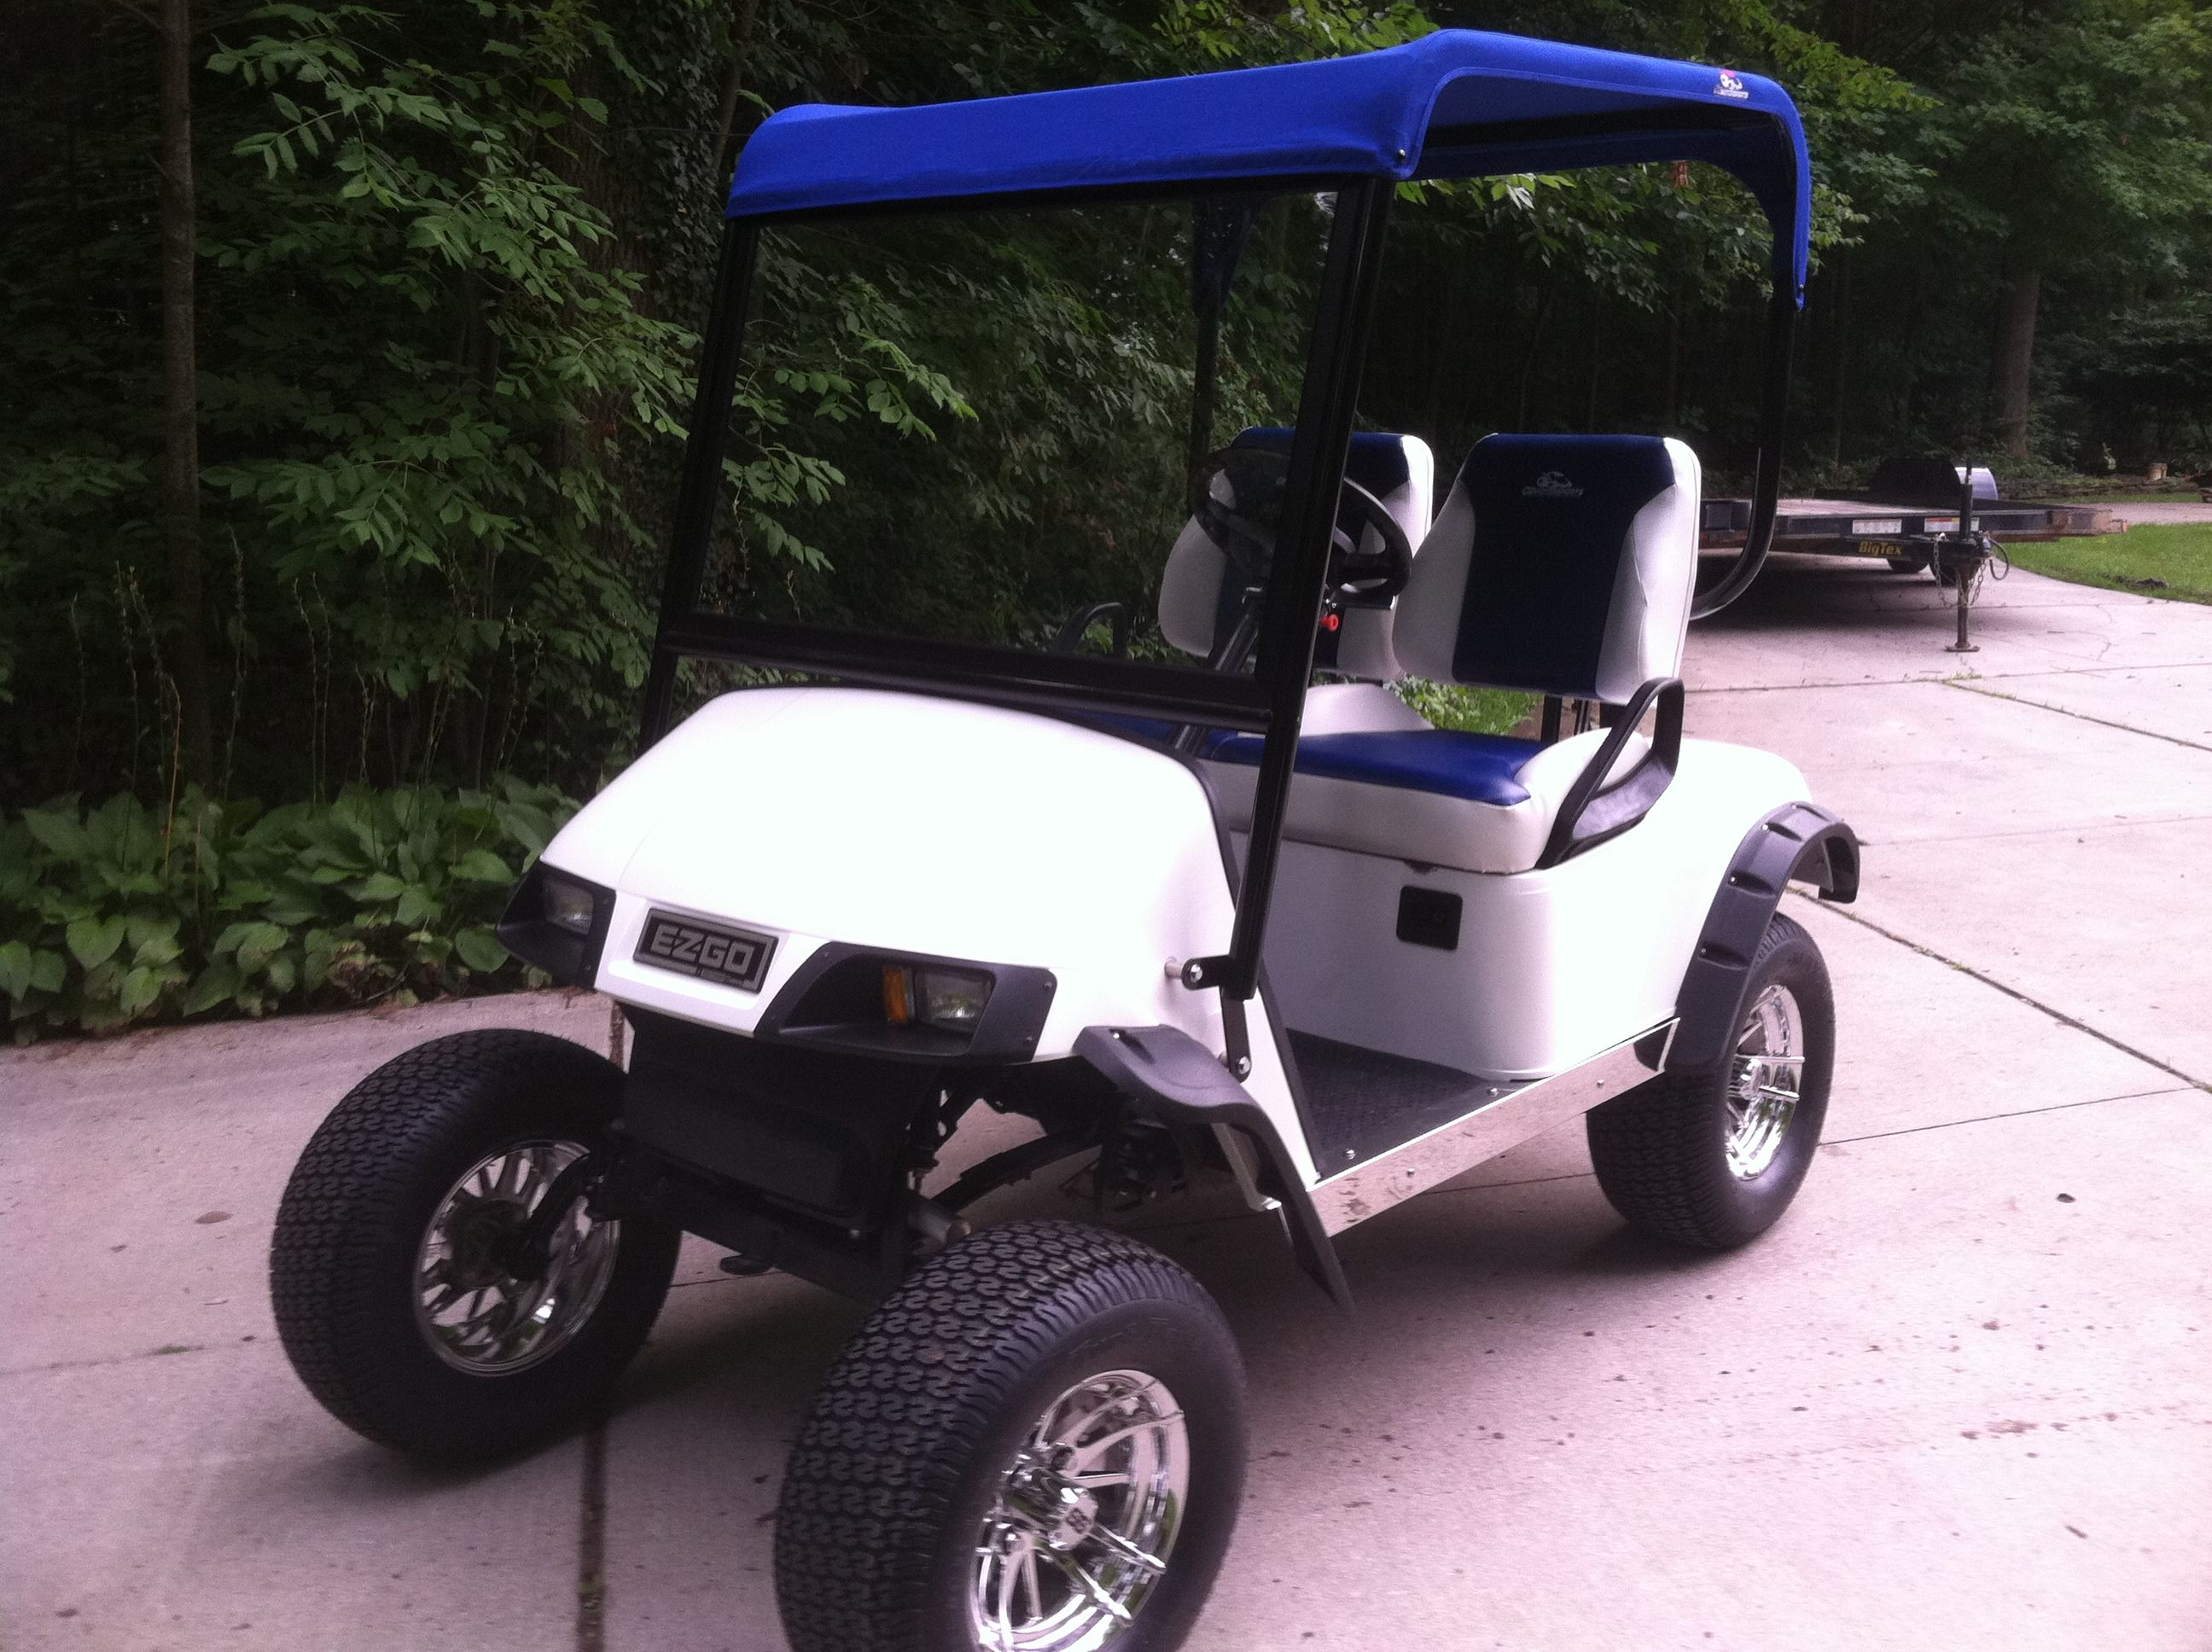 Custom Golf Cart With Soft Top Check Us Out At Www Cartwizards Com Or Email At Ozmotorsports Gmail Com Golf Carts Custom Golf Carts Soft Tops